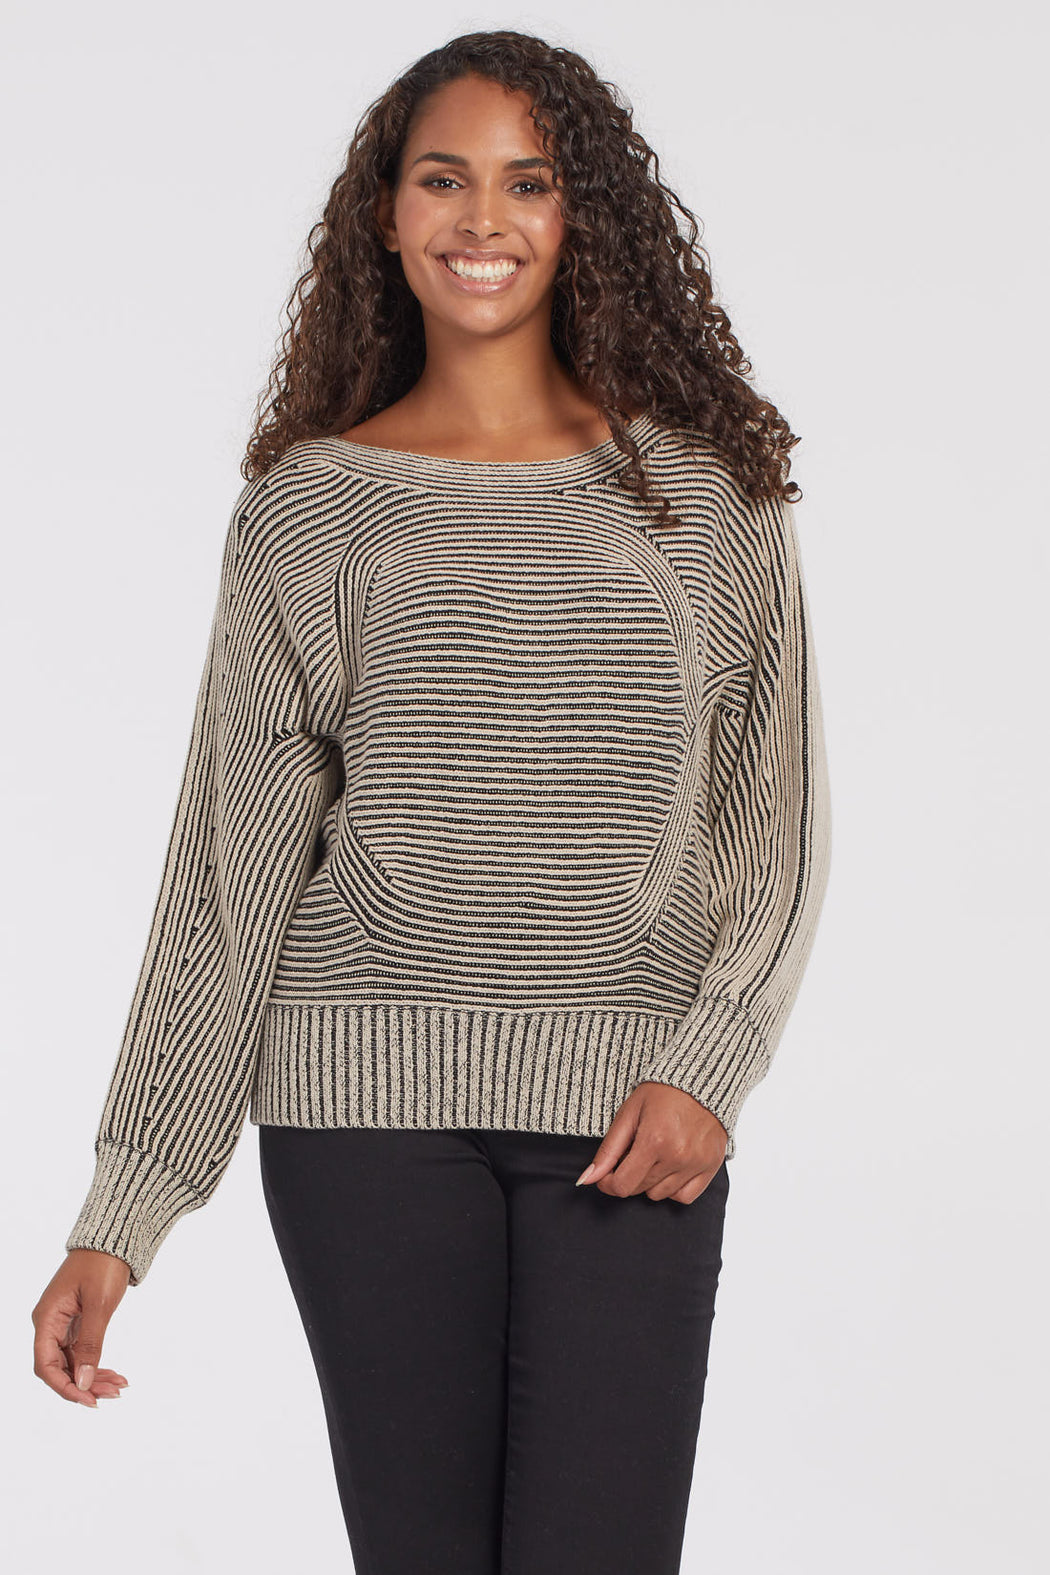 Tribal Long Sleeve Dolman Sweater. Designed with a mix of black and beige yarn for easy to pair neutrals, this dolman sleeve top is unlike anything else in your closet. Its ribbed fabric, captivating pattern, and double-colored knitting are right on trend.